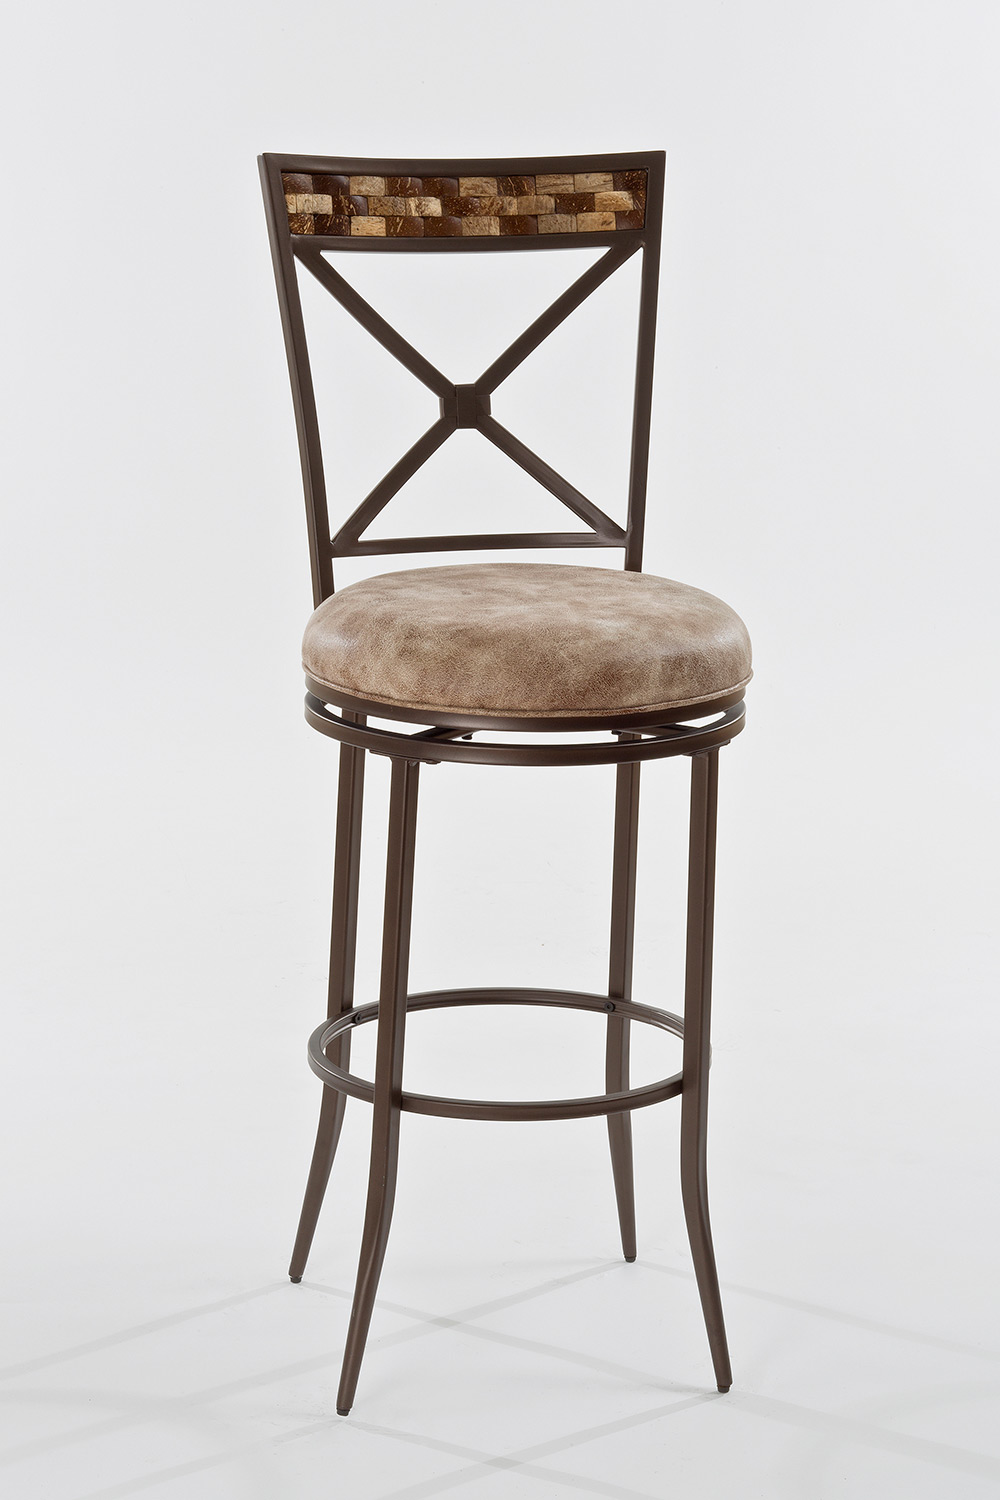 Hillsdale Compton Swivel Bar Stool - Brown - Weathered Beige Leatherette